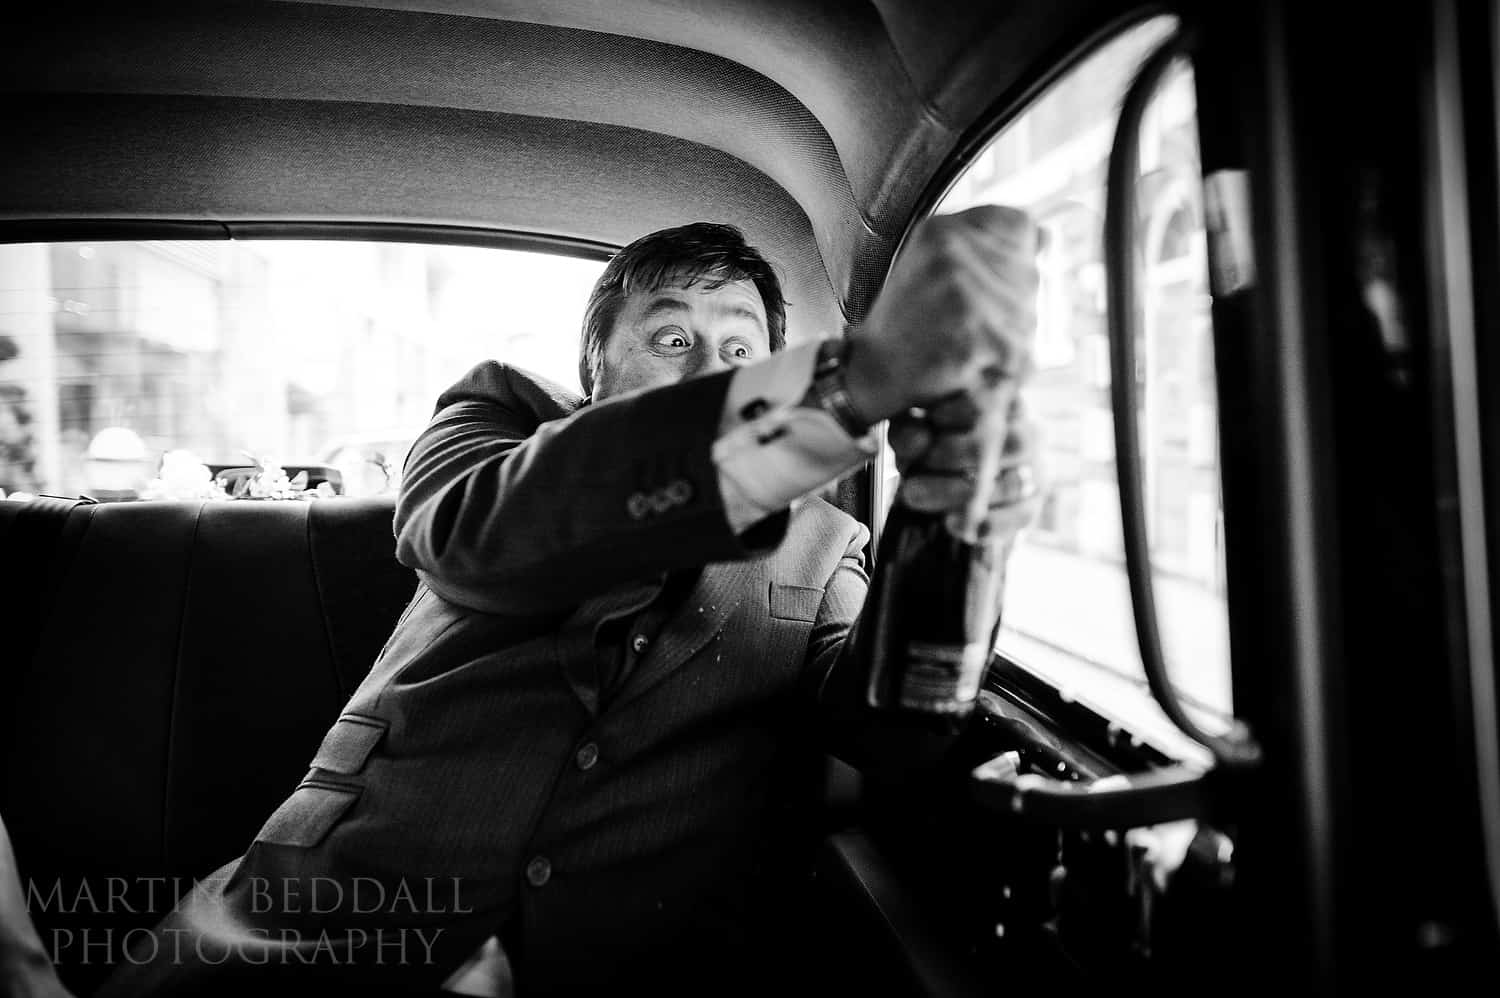 Opening a bottle of champagne in the London taxi